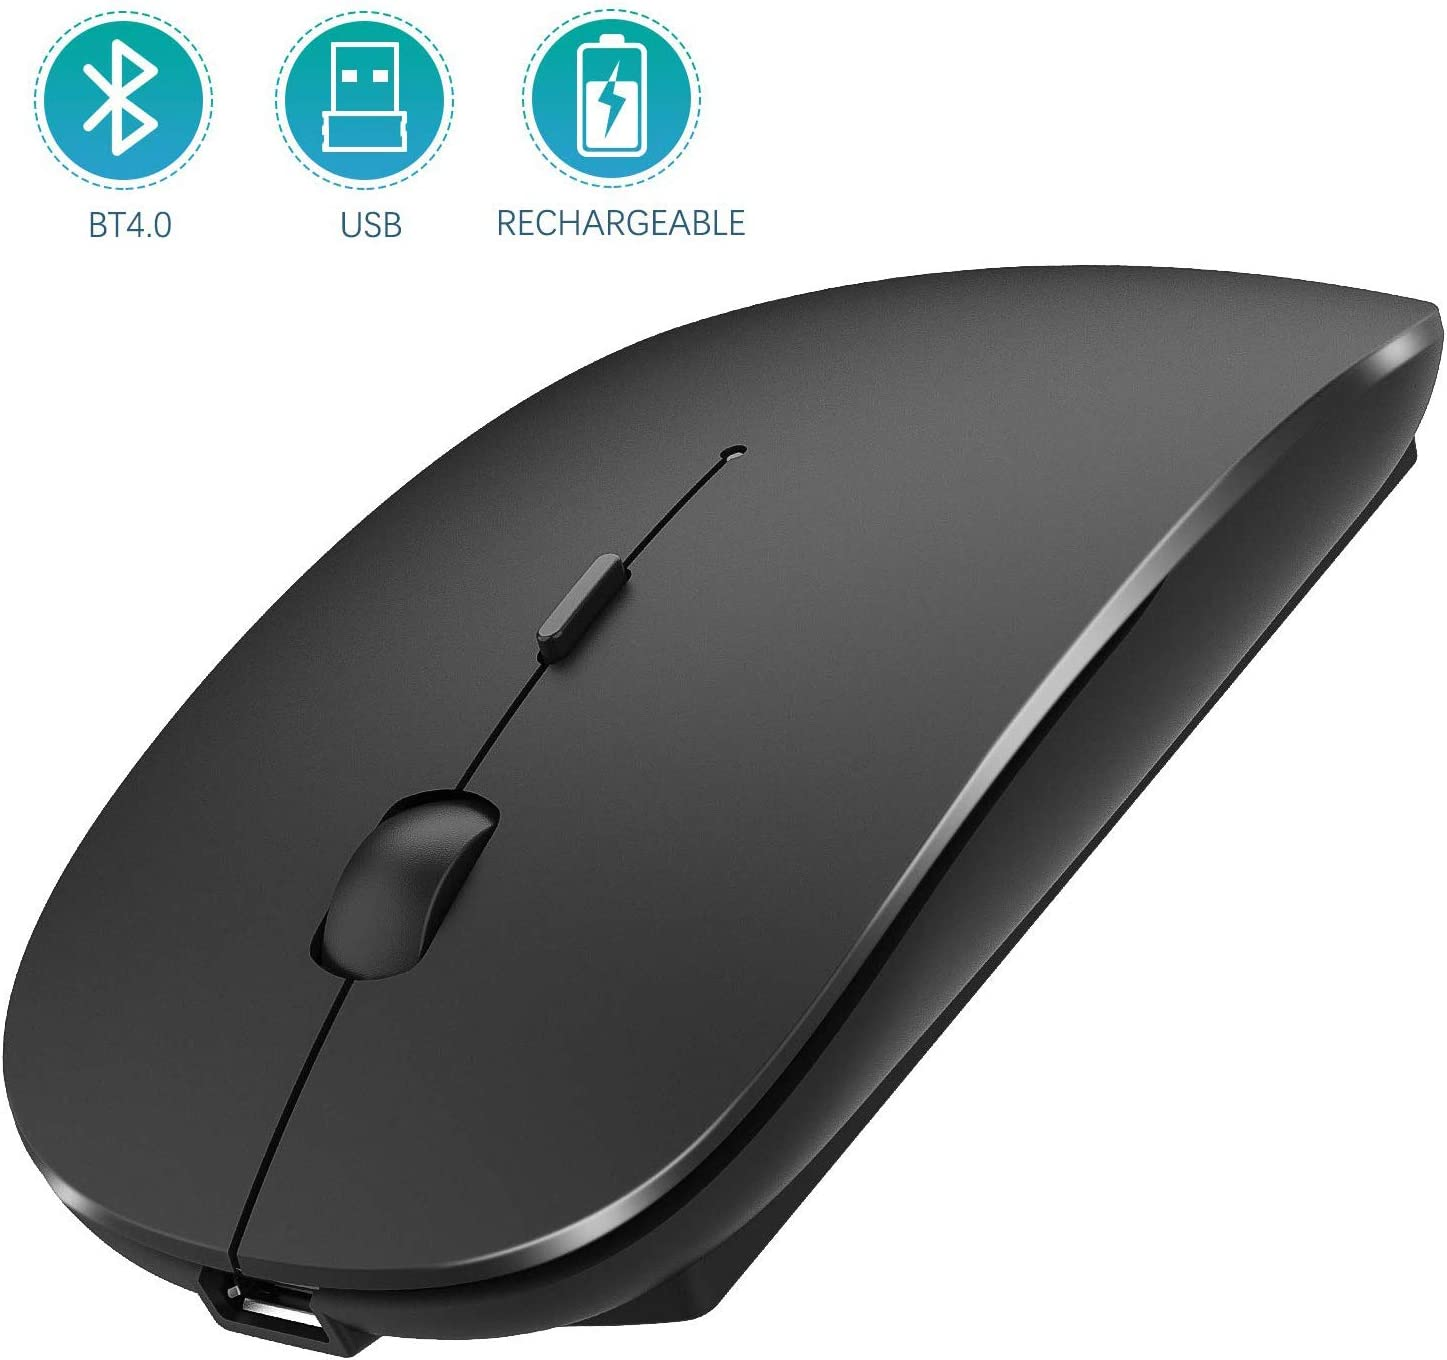 Bluetooth Wireless Mouse, Dual Mode Slim Rechargeable Wireless Mouse Silent Cordless Mouse with Bluetooth 4.0 and 2.4G Wireless, Compatible with Laptop, PC, Windows Mac Android OS Tablet (Black)